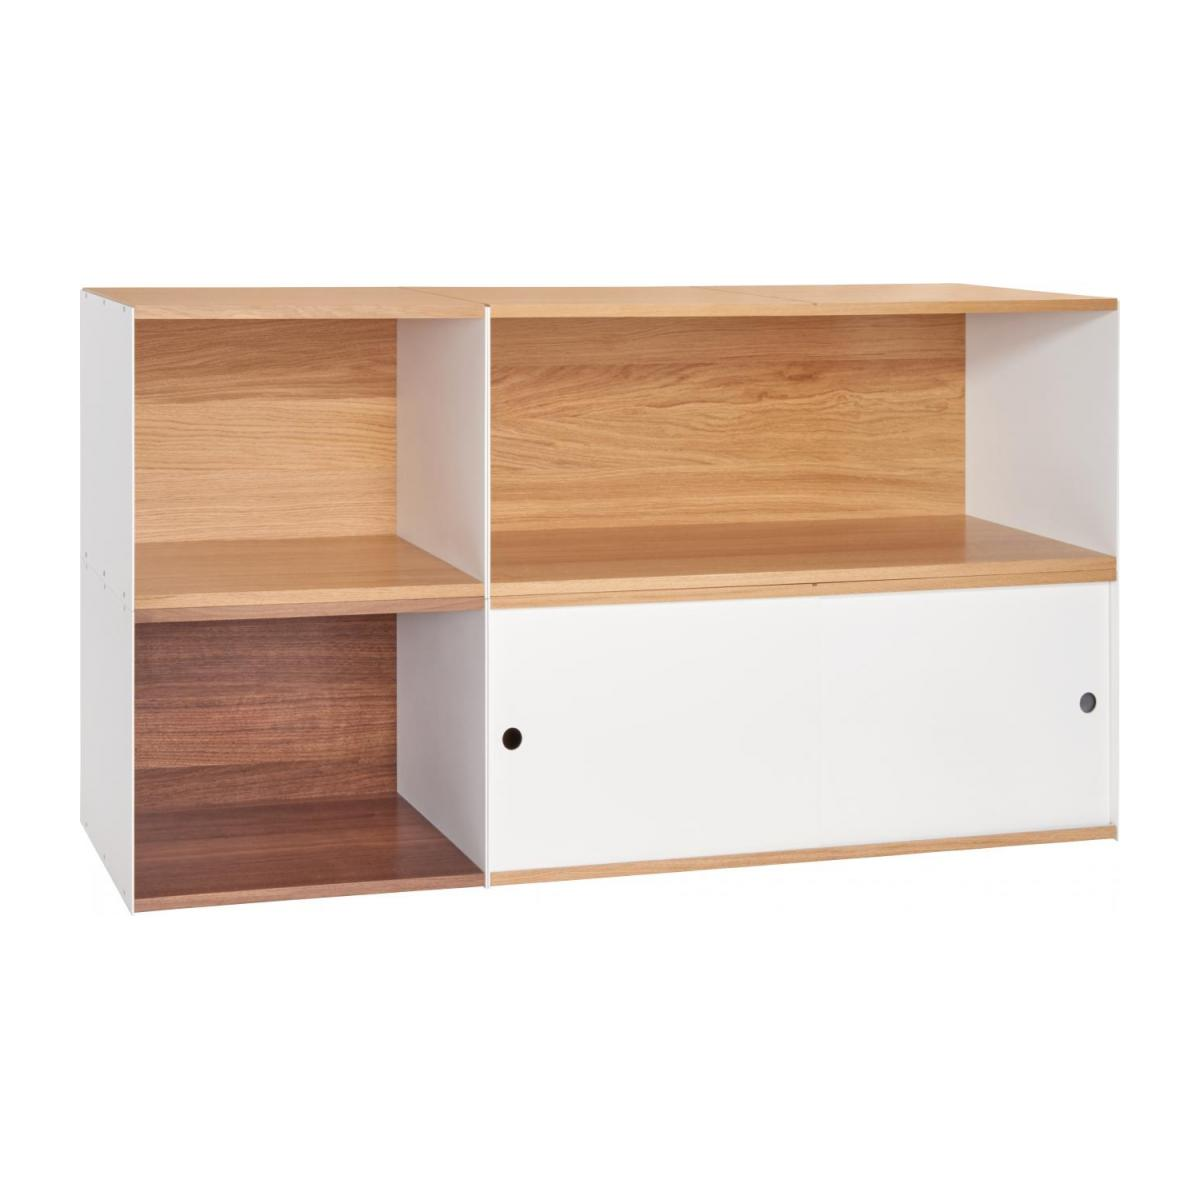 White walnut open modular storage rack - Design by Kasch Kasch n°7